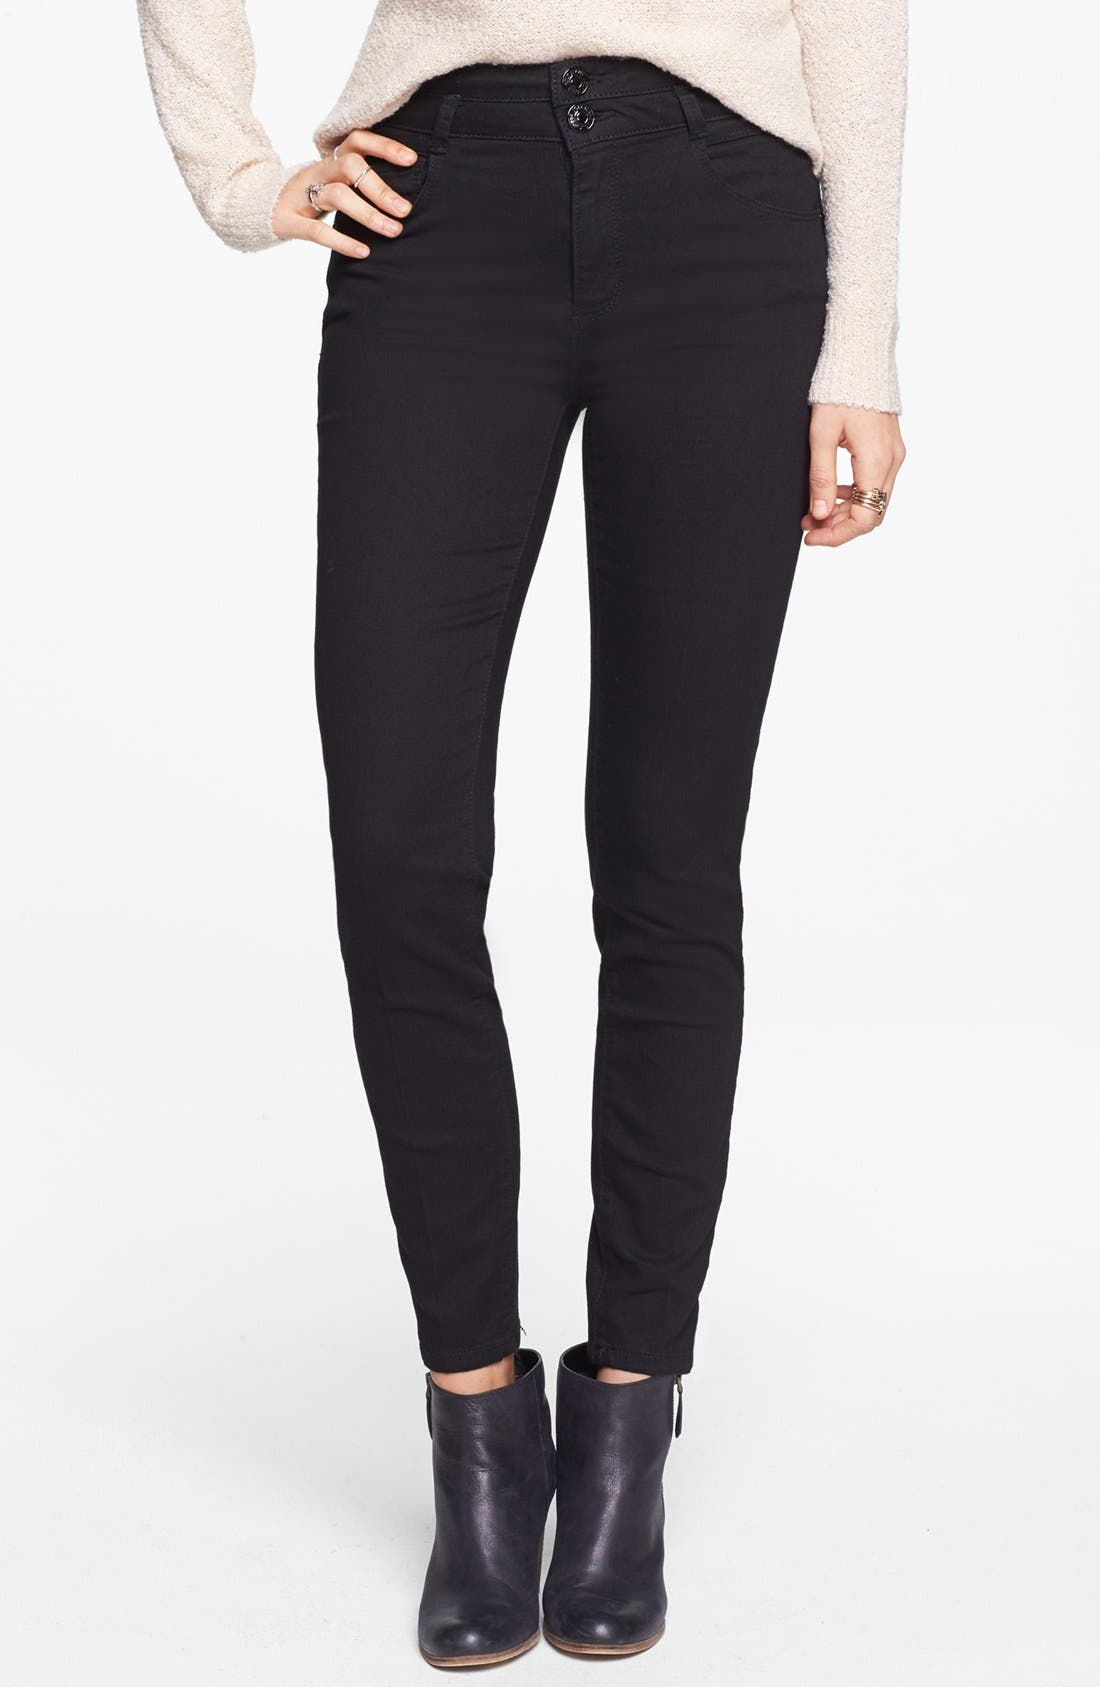 Alternate Image 1 Selected - Jolt High Waist Skinny Jeans (Black) (Juniors)